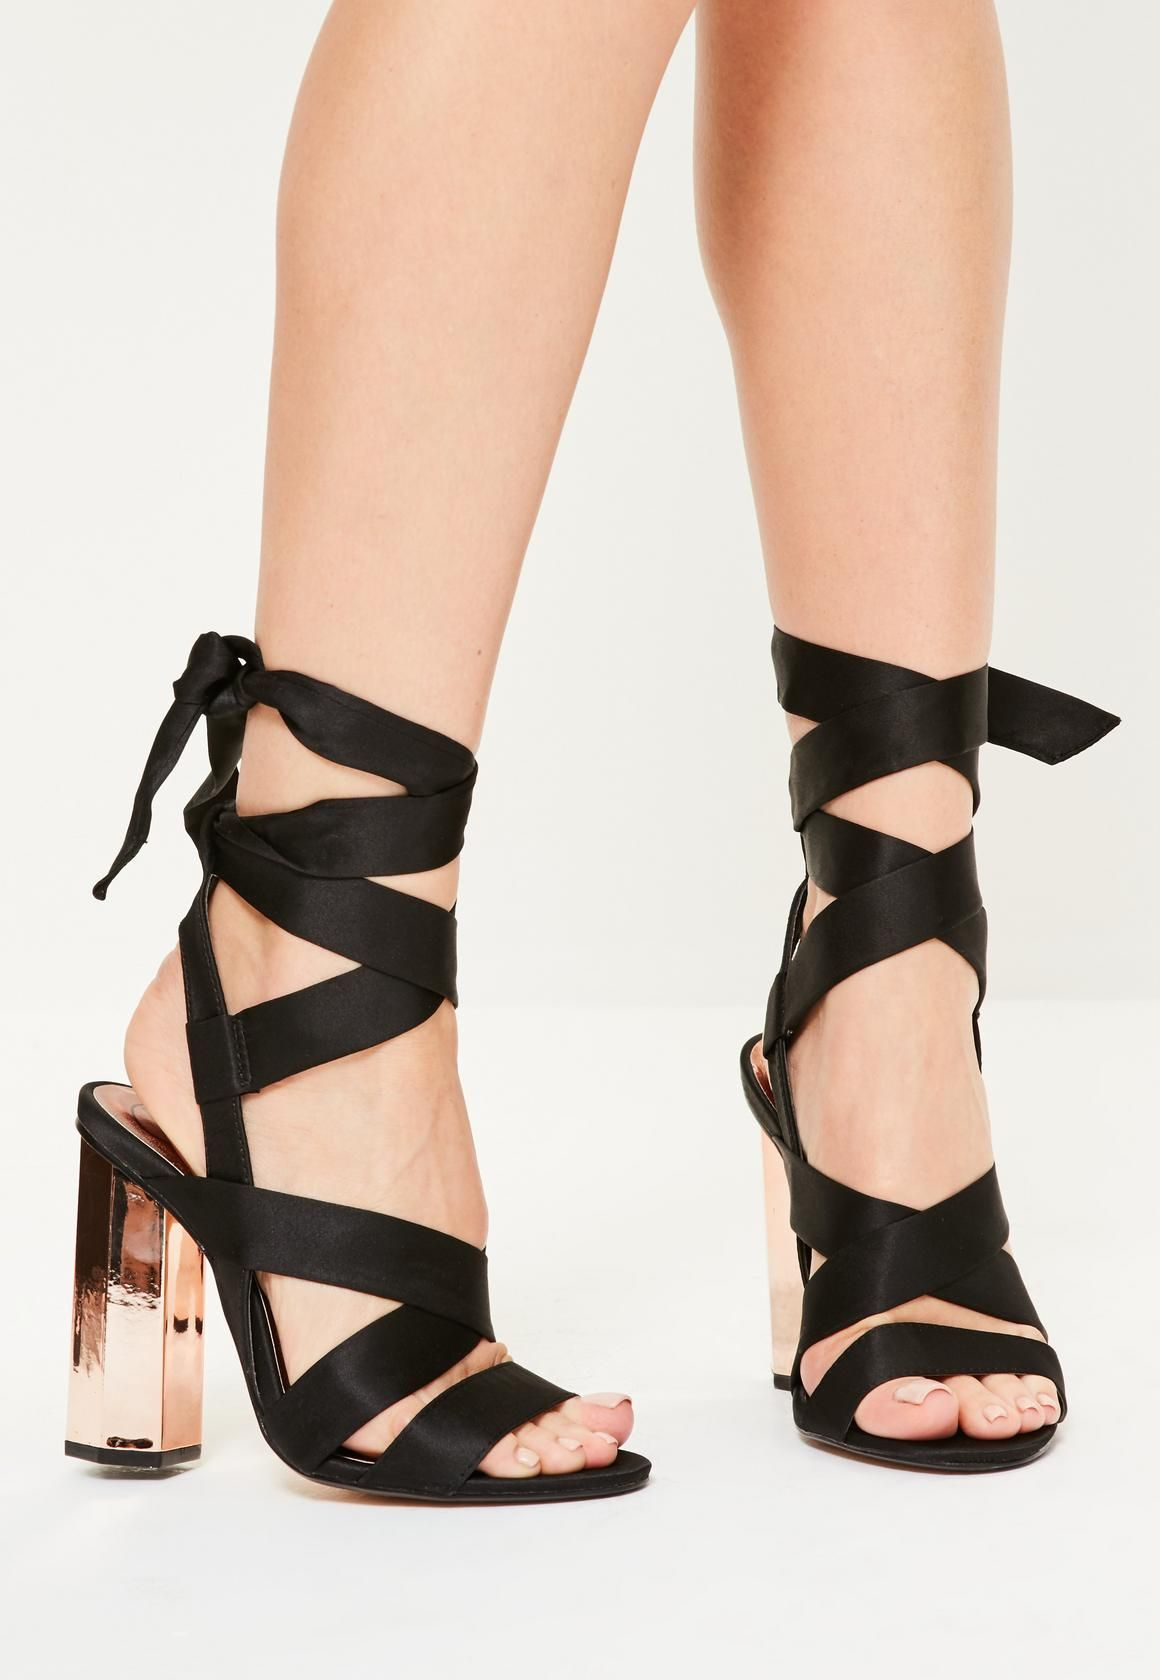 bfb51d0d82341 Lace Up Heels